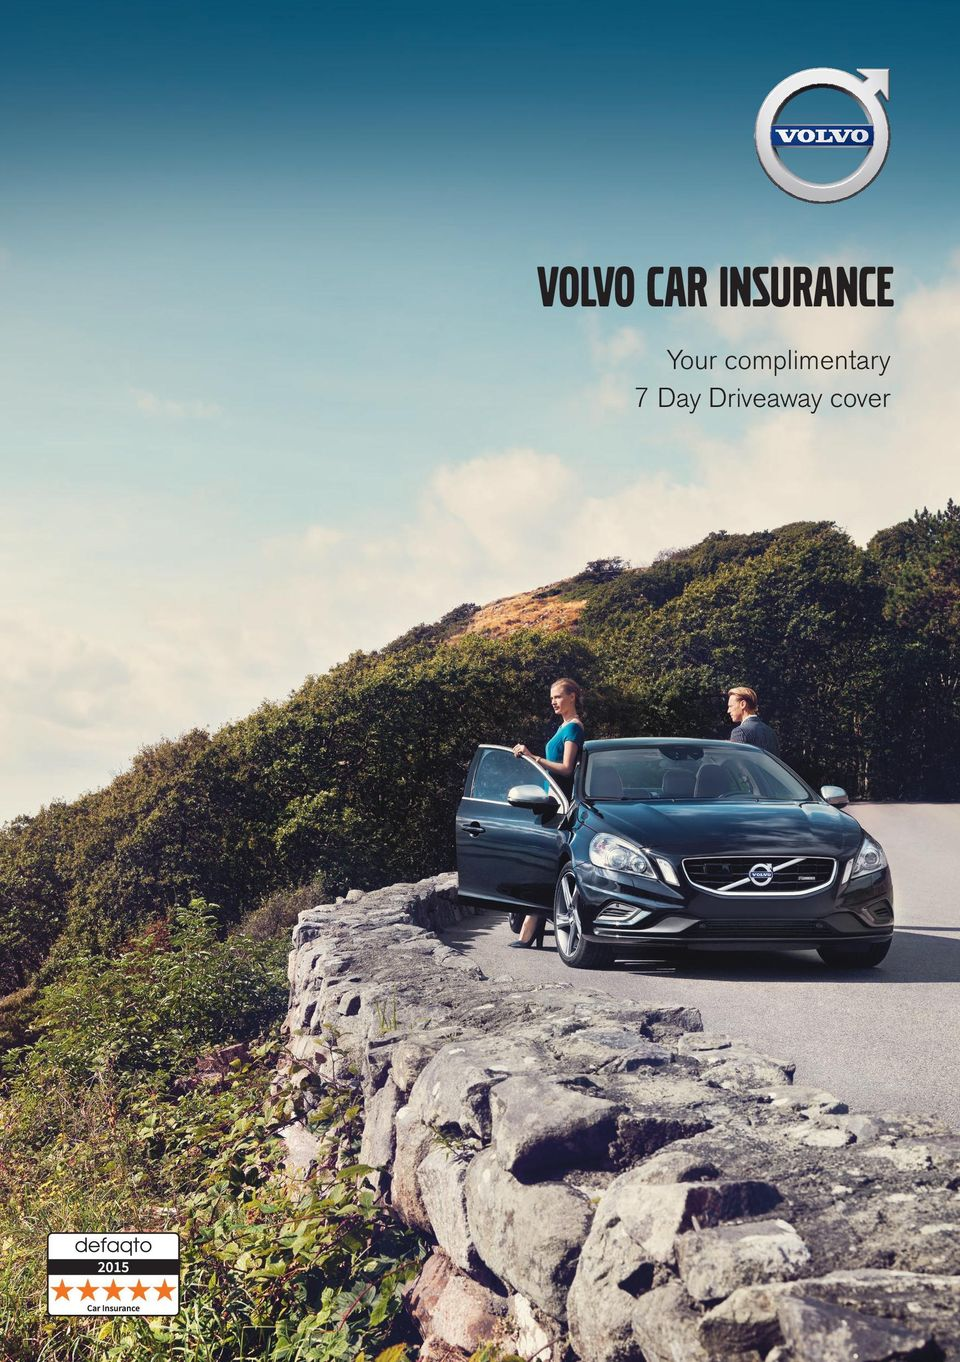 2 Volvo Car Insurance Designed For You And Your Volvo You Ve Made A Great Choice In Buying A Volvo Now We Are Giving You The Opportunity To Make Another By